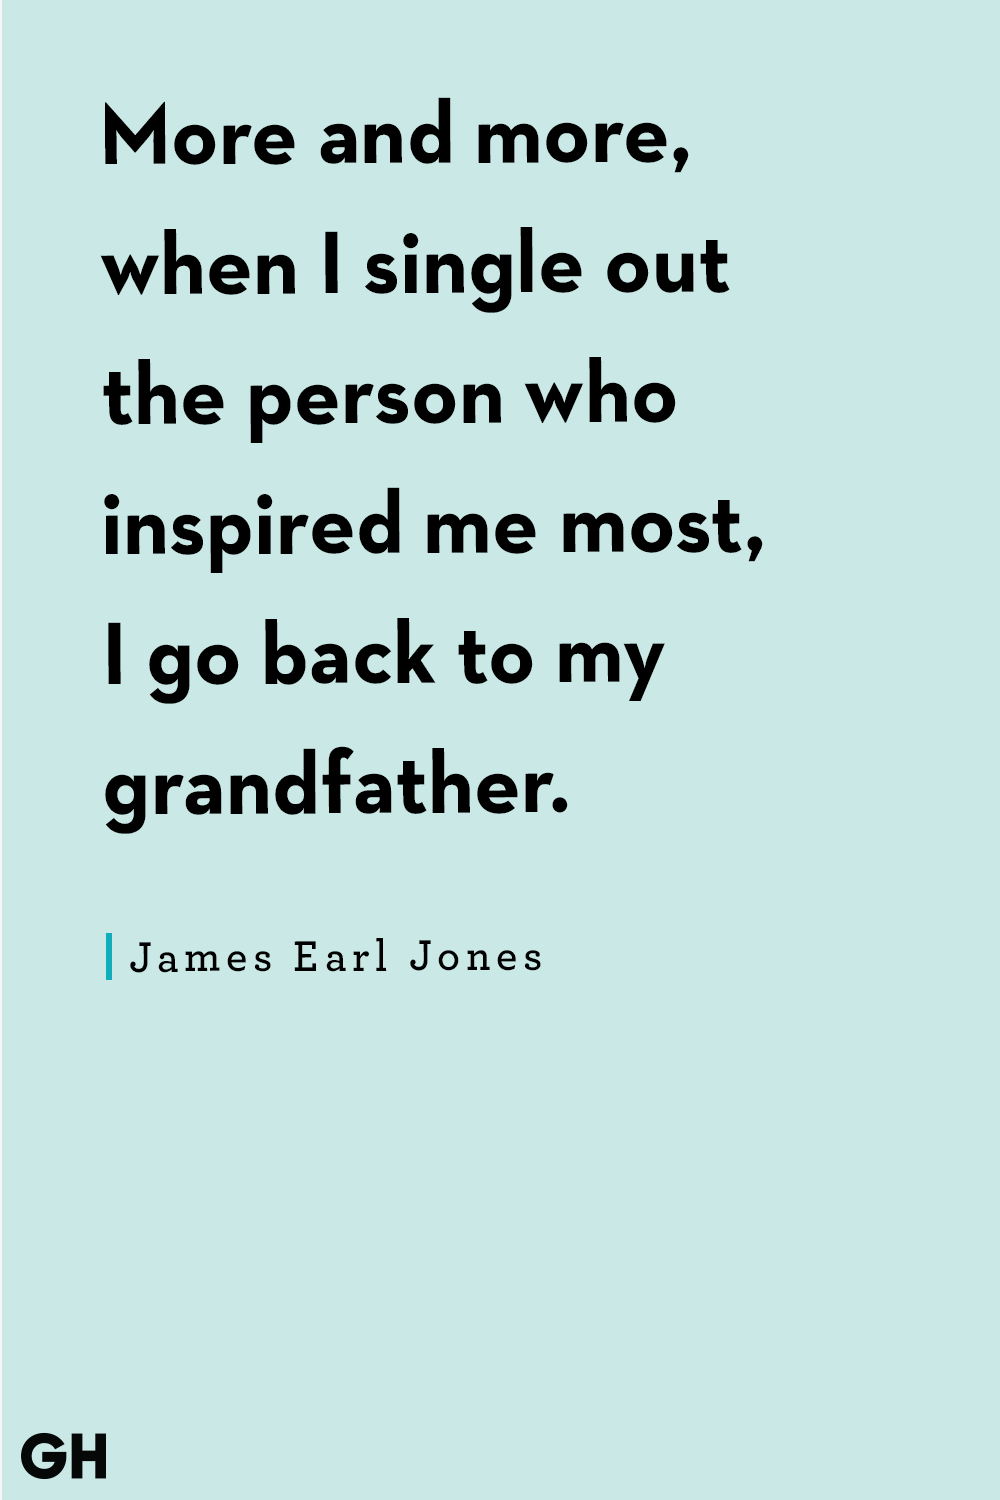 20 Best Grandpa Quotes - Sayings and Quotes About Grandfathers